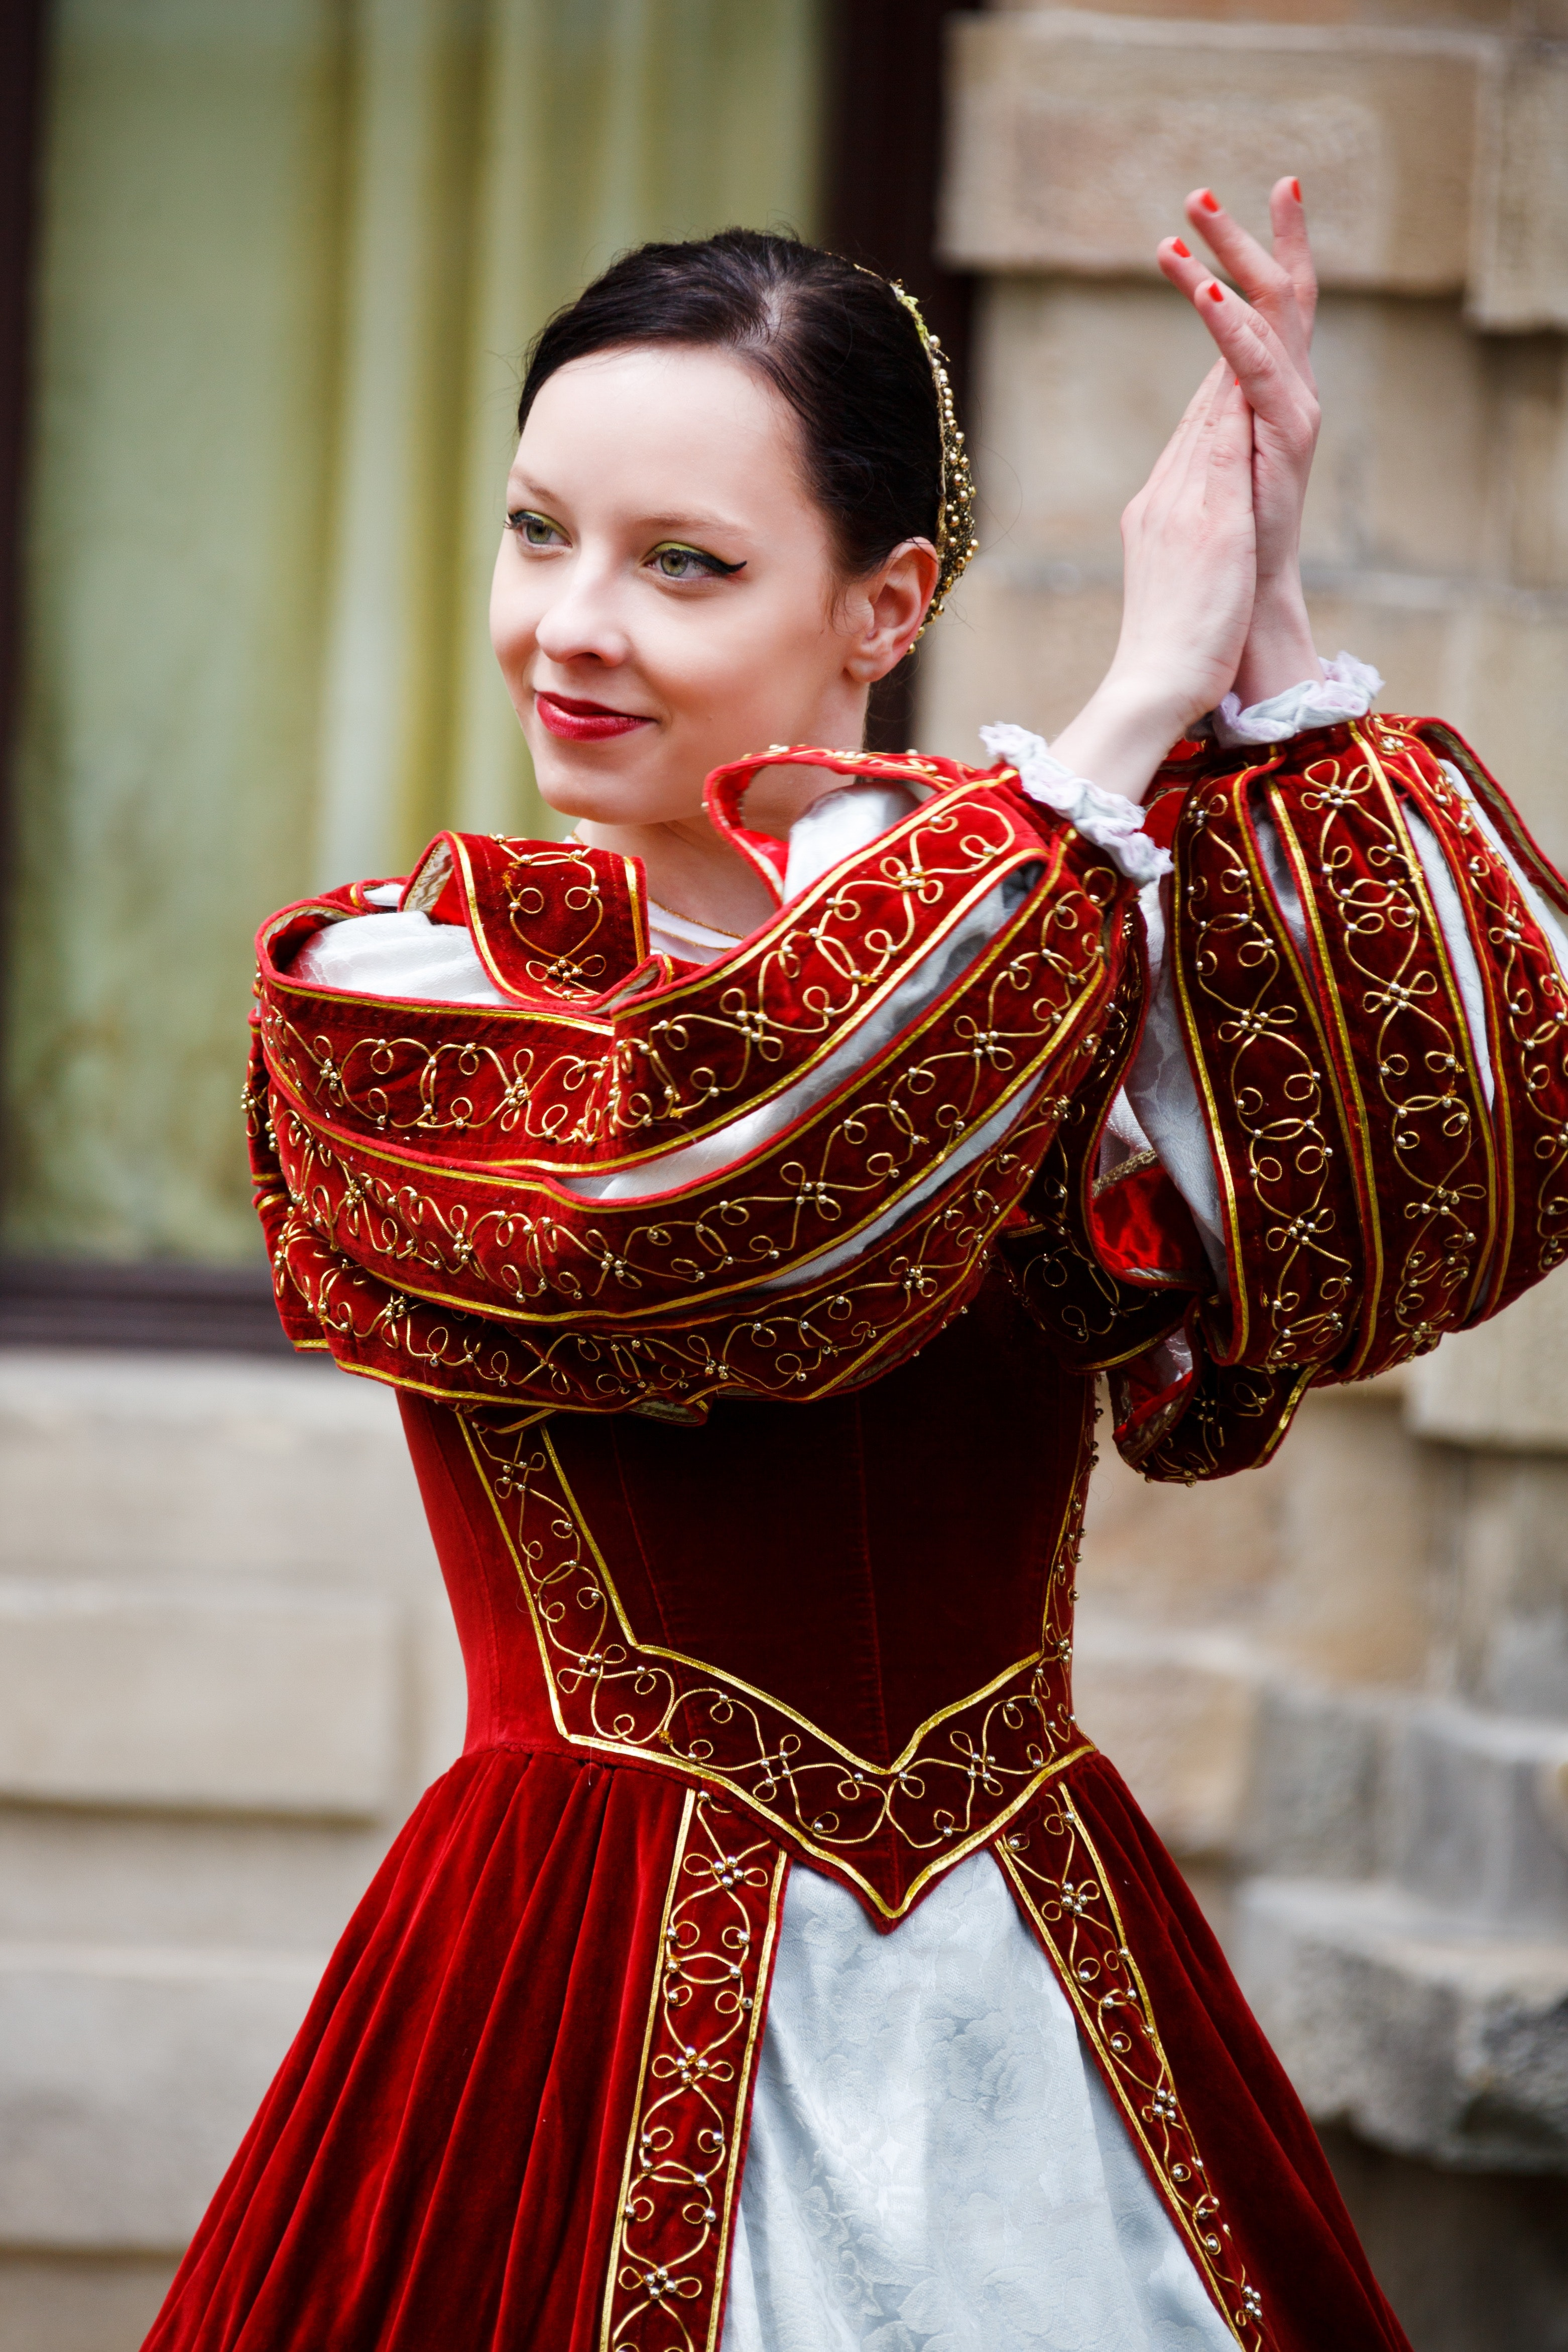 Woman in Red White Dress Clapping in Daytime, Colorful, Costume, Dance, Dancer, HQ Photo